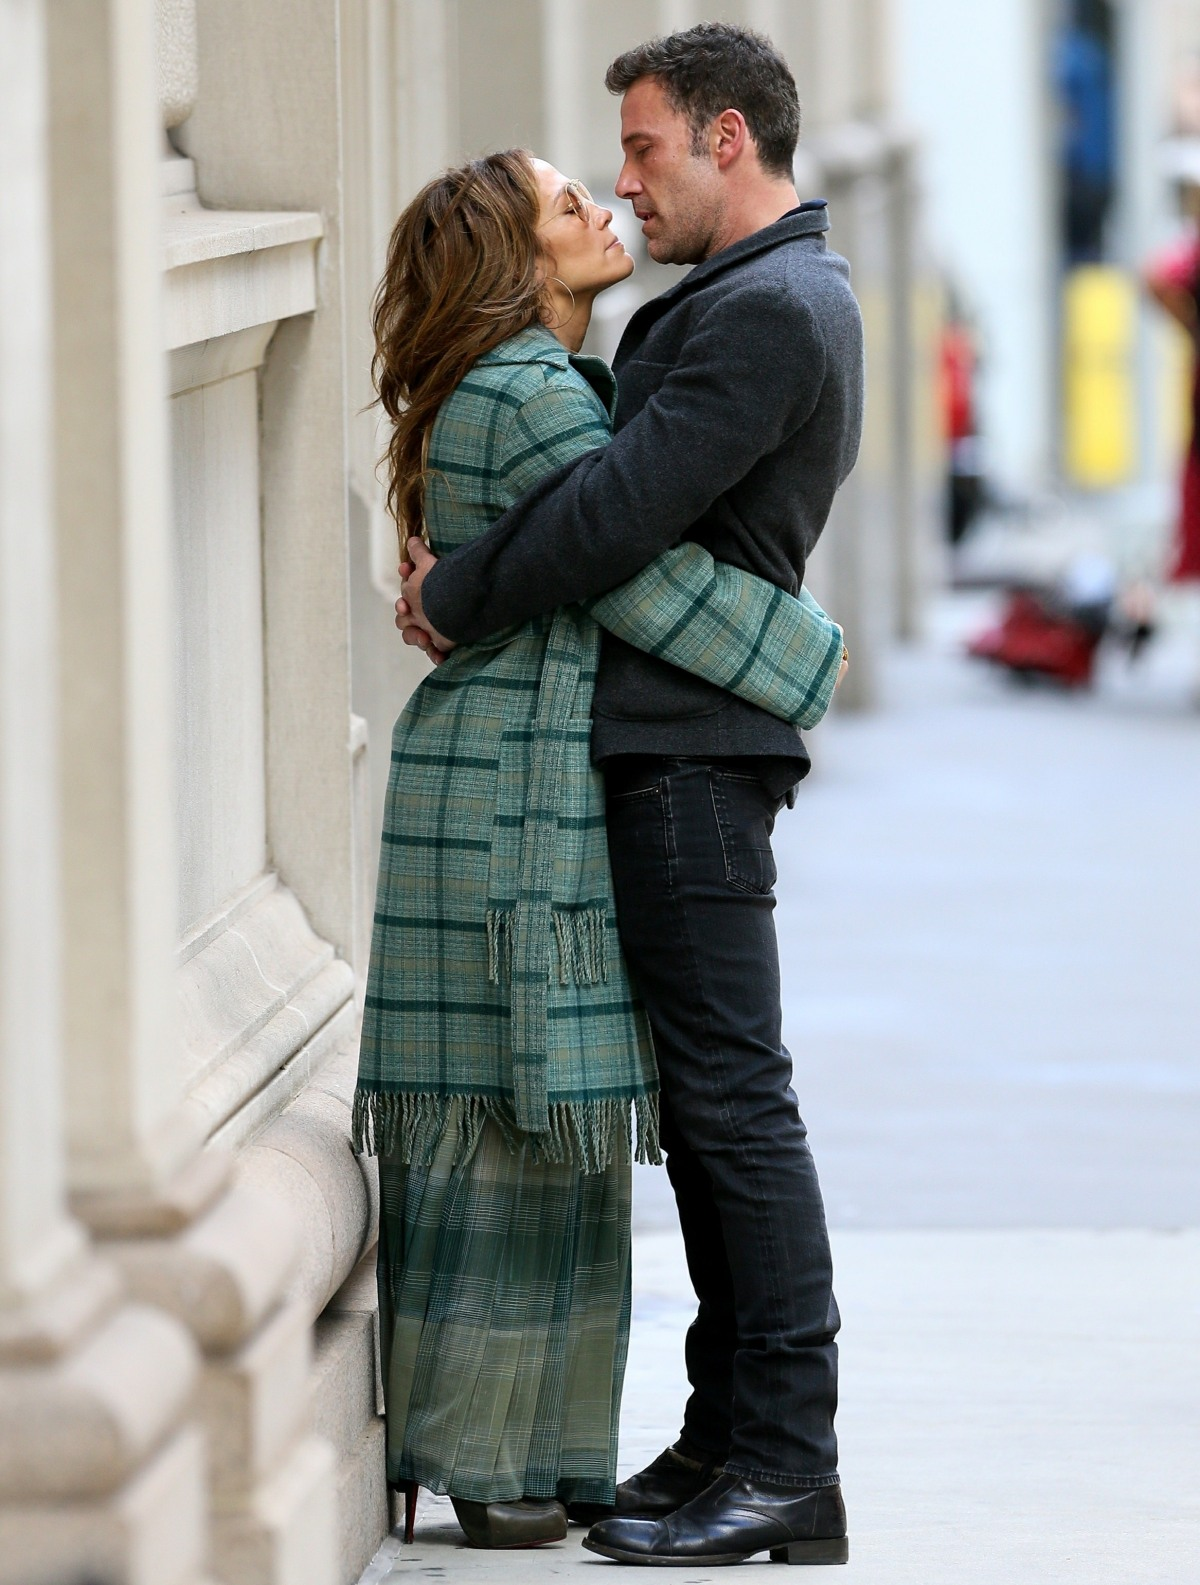 Jennifer Lopez and Ben Affleck kiss in New York City before flying out